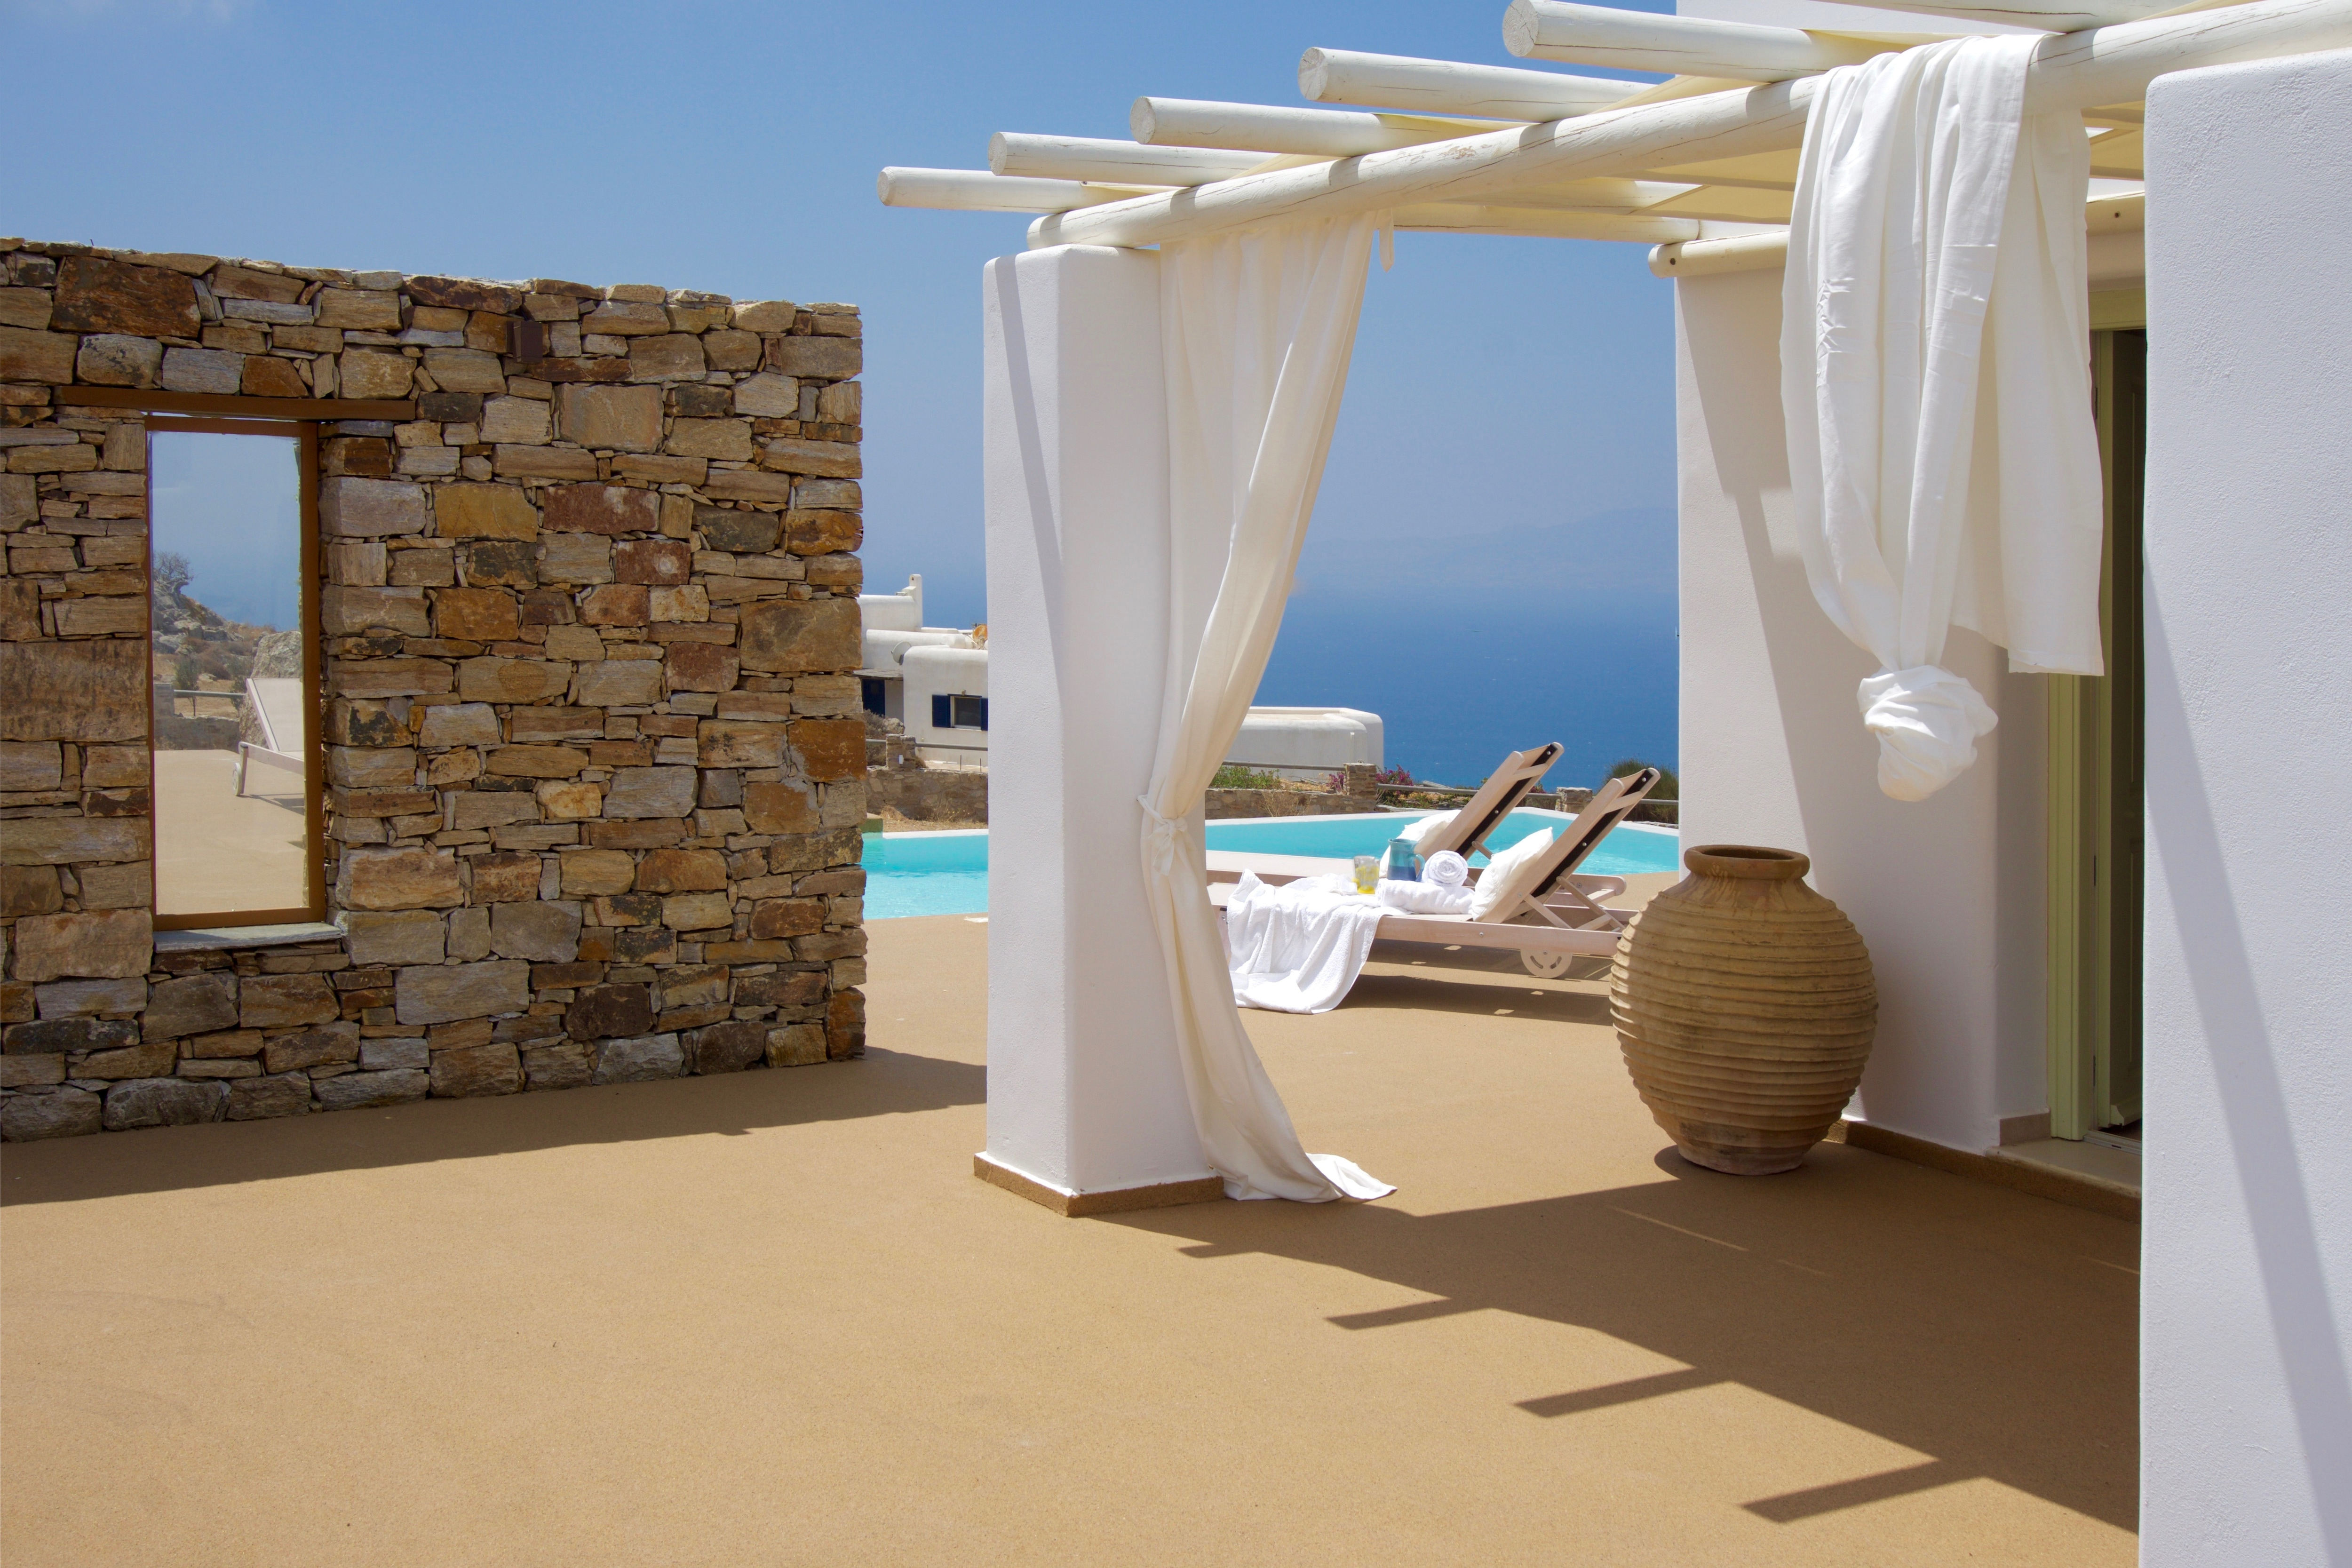 Property Image 2 - Cozy 2 bedroom hilltop villa with private pool